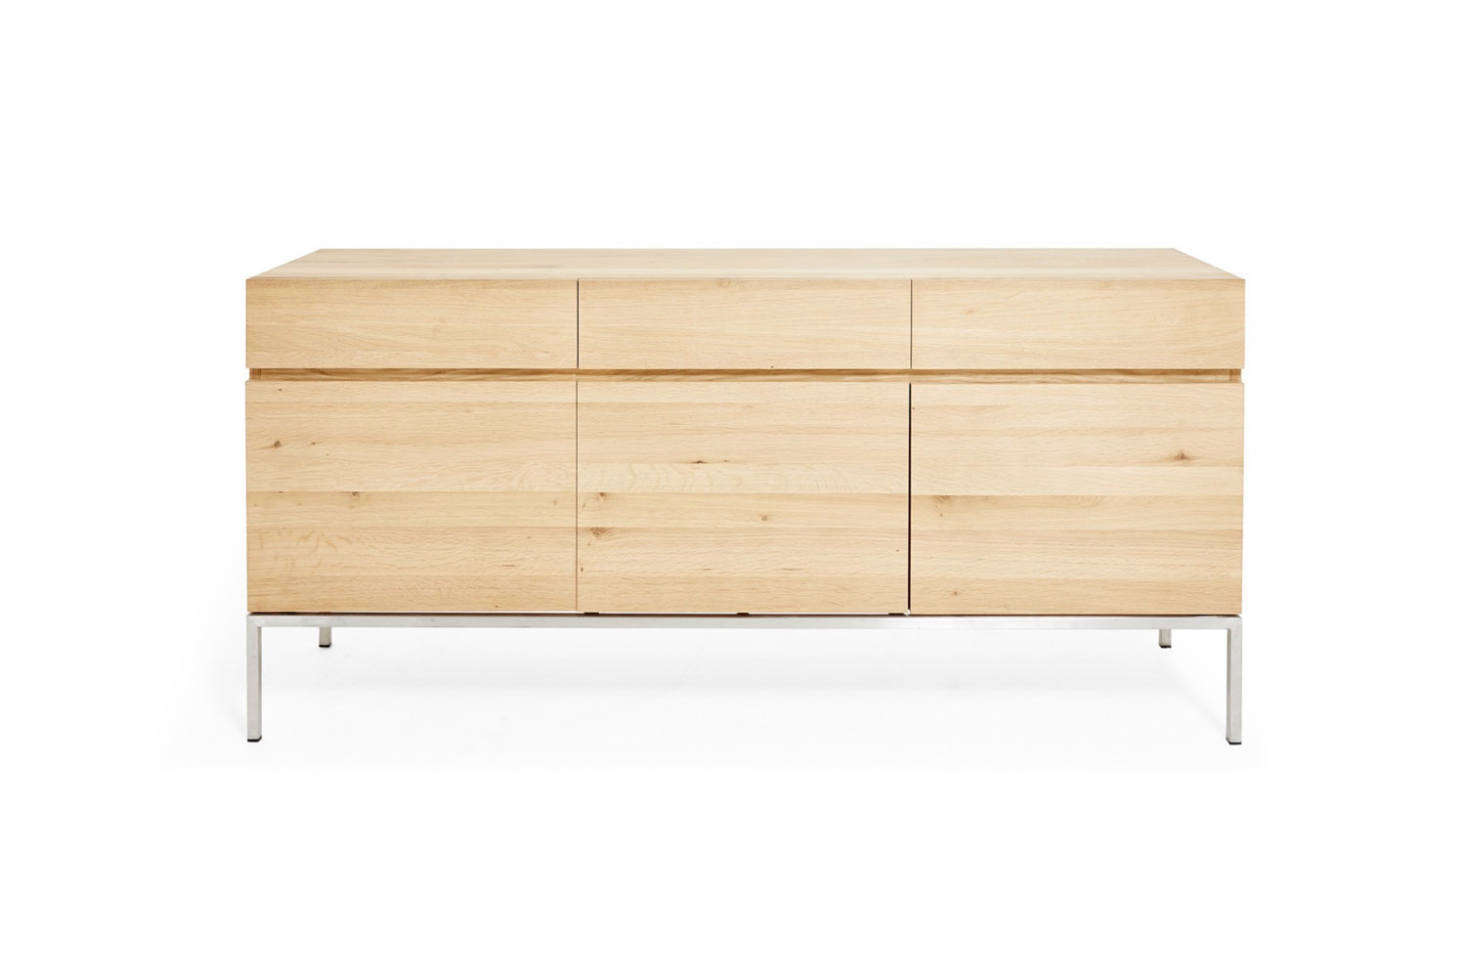 The Ethnicraft Oak Ligna Sideboard is made of oak with steel legs, starting at $src=